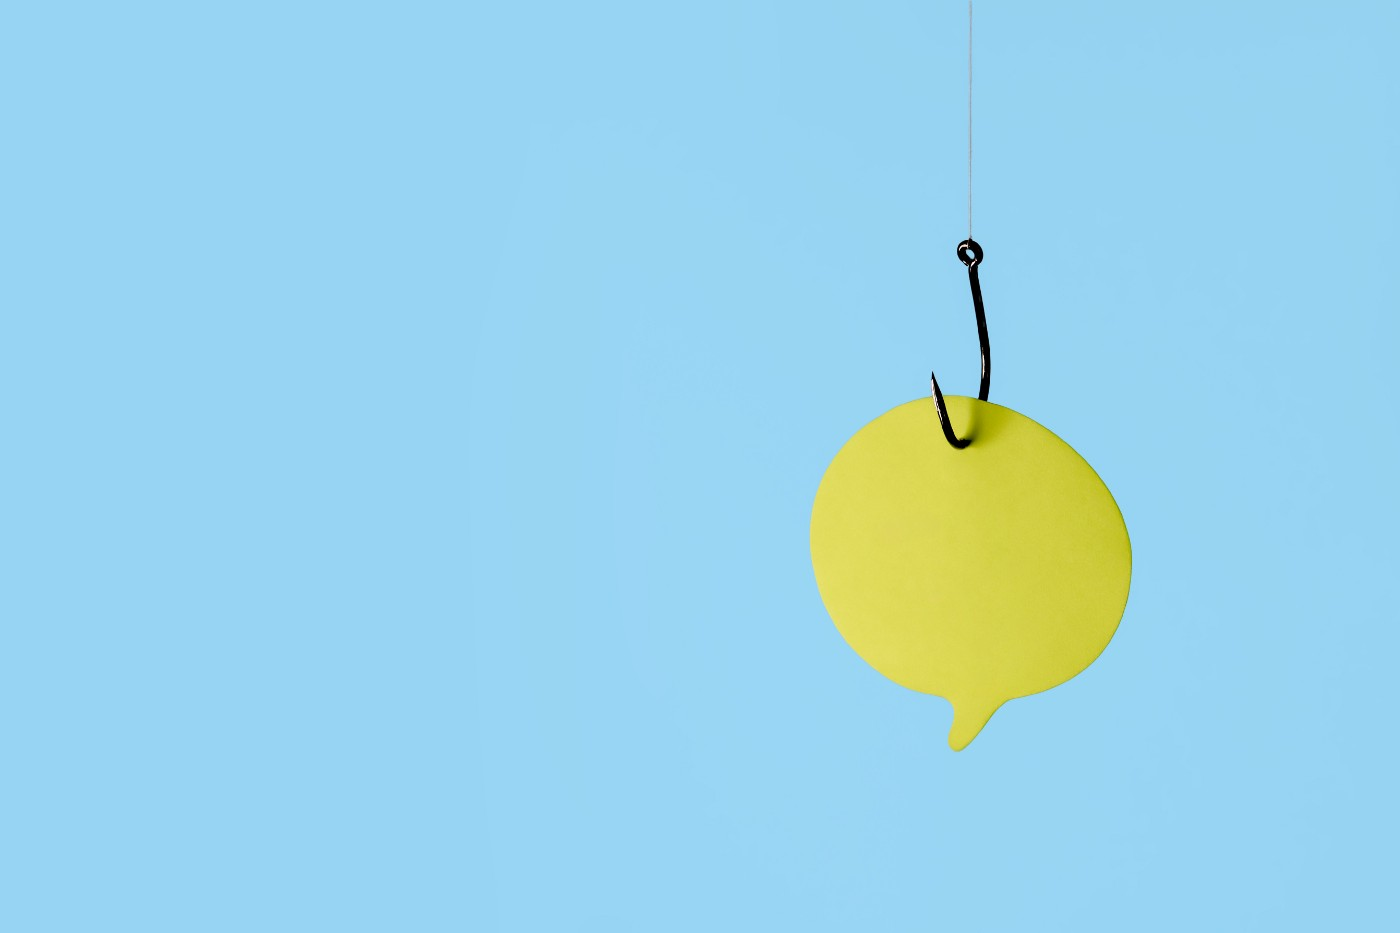 A yellow paper quote bubble on a fishing hook with a blue background.